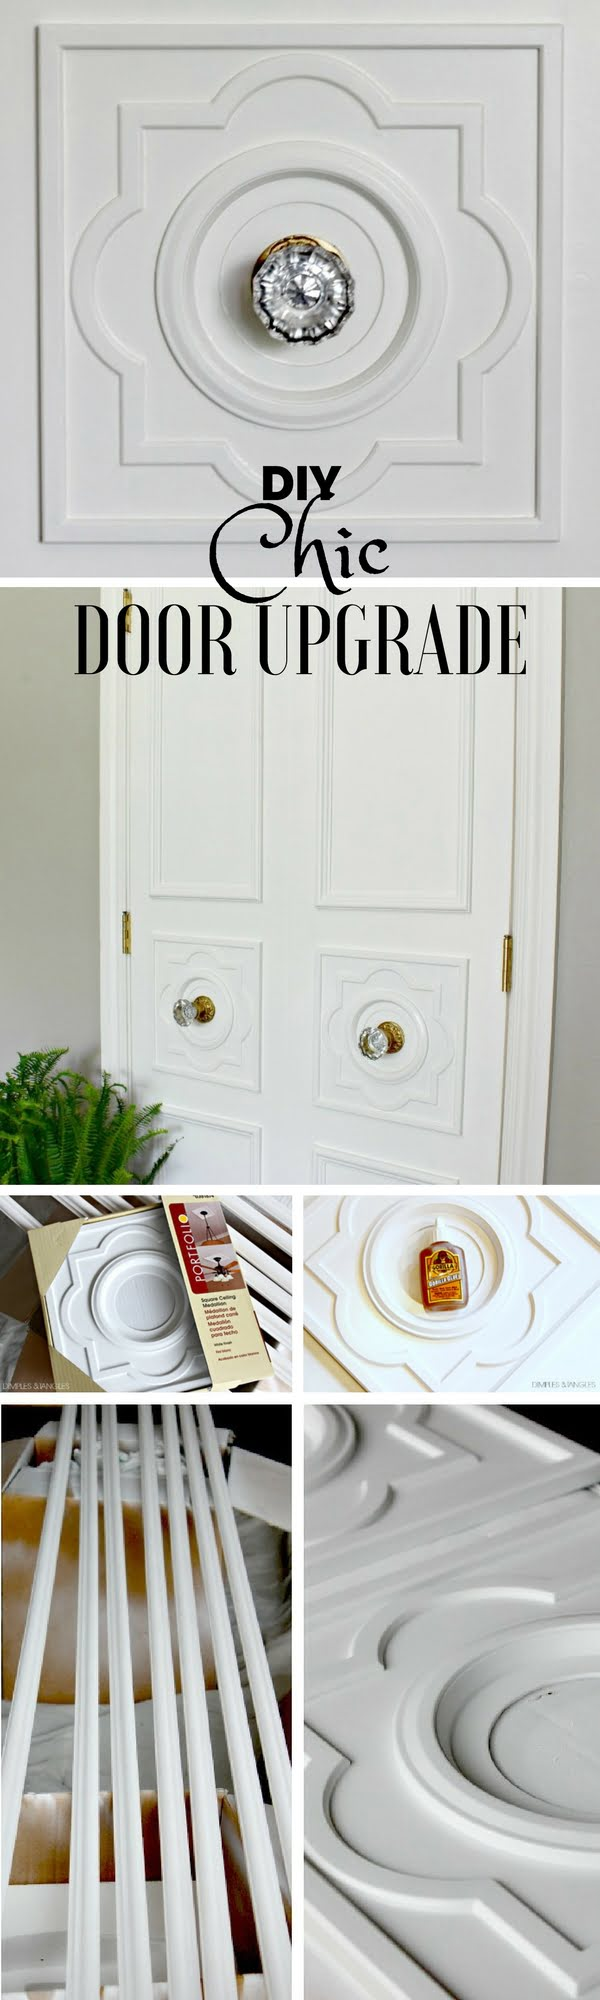 Check out the tutorial: #DIY Chic Door Upgrade